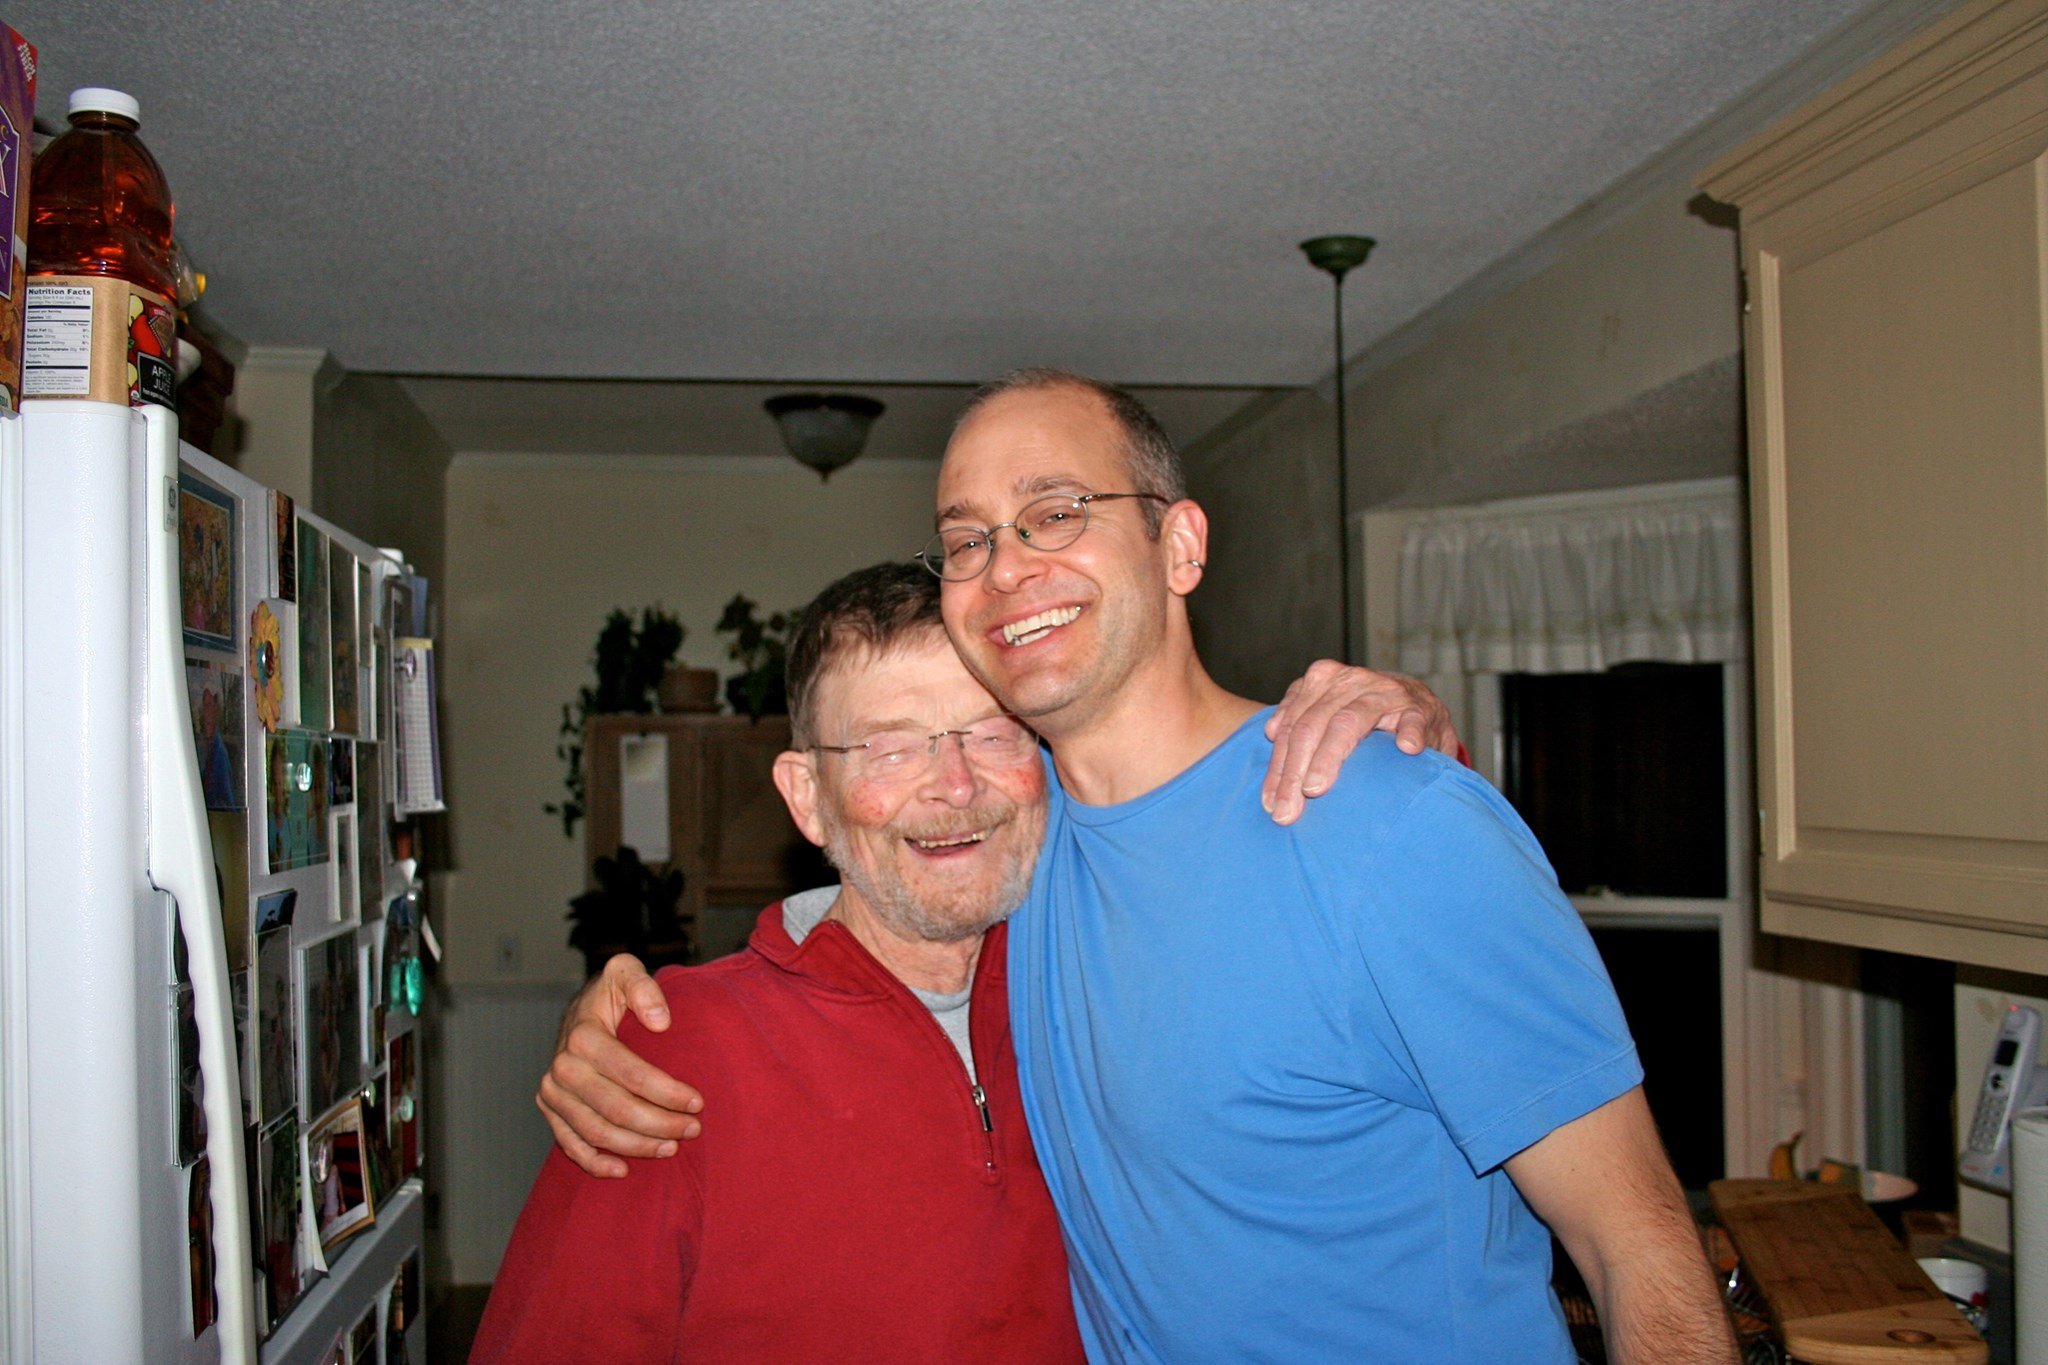 John and Dave, Carrboro NC, Xmas 2012